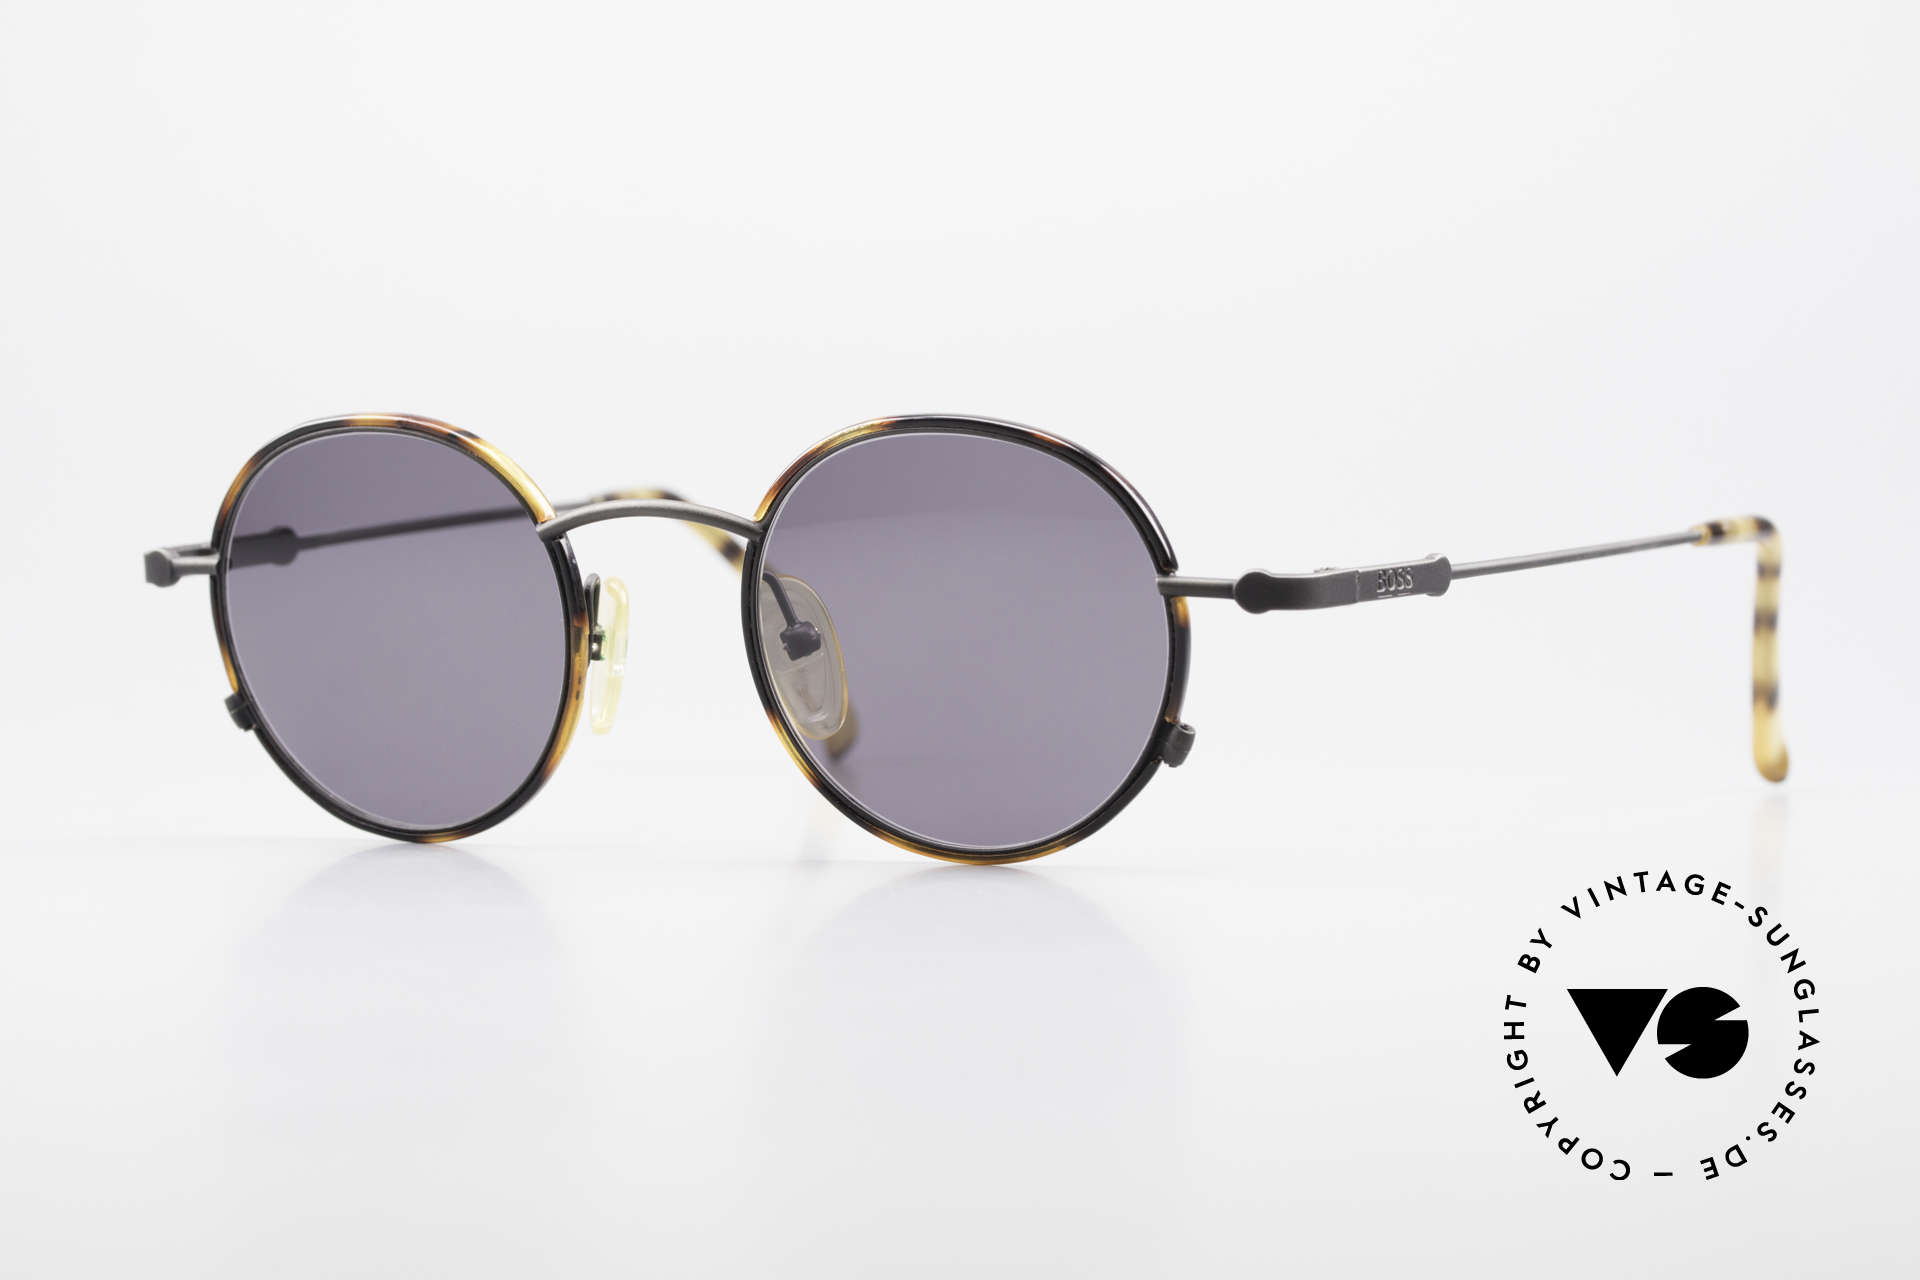 BOSS 5148 Round Panto Style Sunglasses, round vintage 'panto design' sunglasses by BOSS, Made for Men and Women